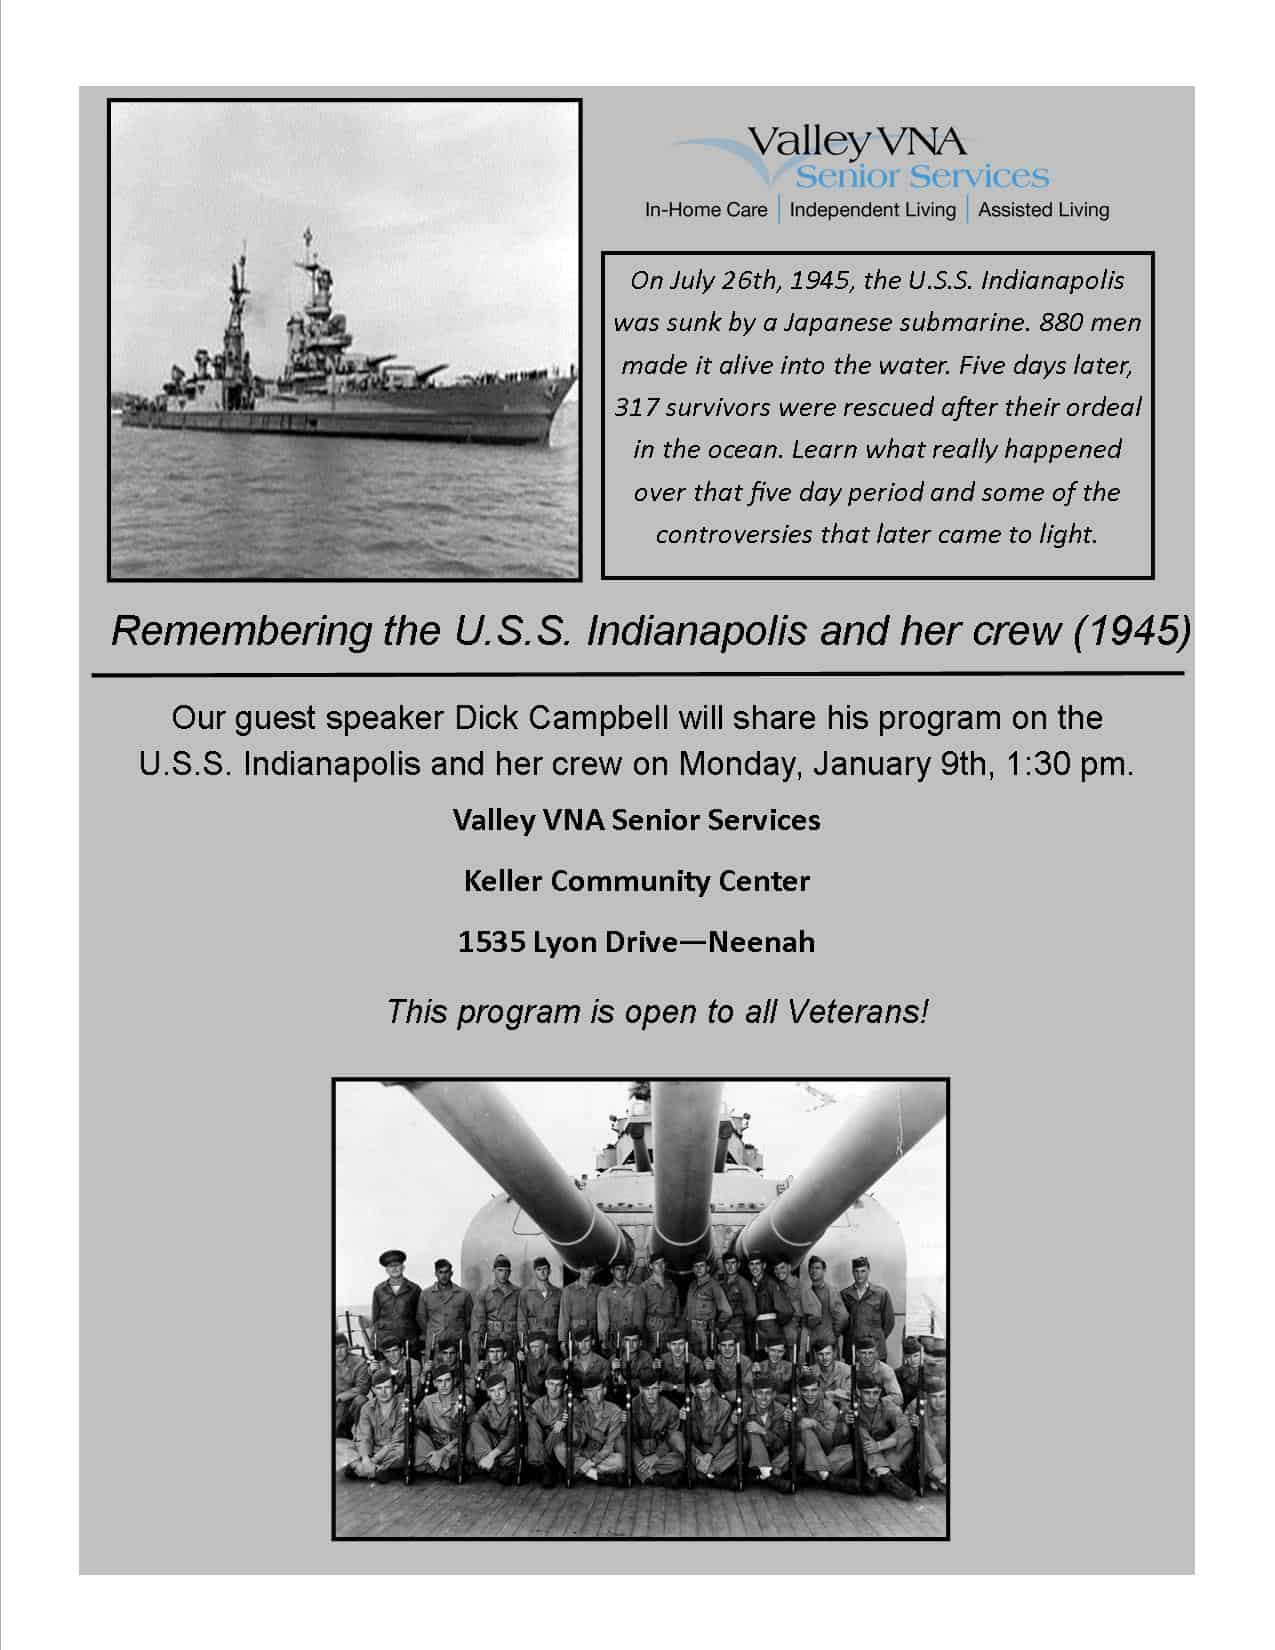 uss-indianapolis-crew-010917 - Valley VNA Senior Care